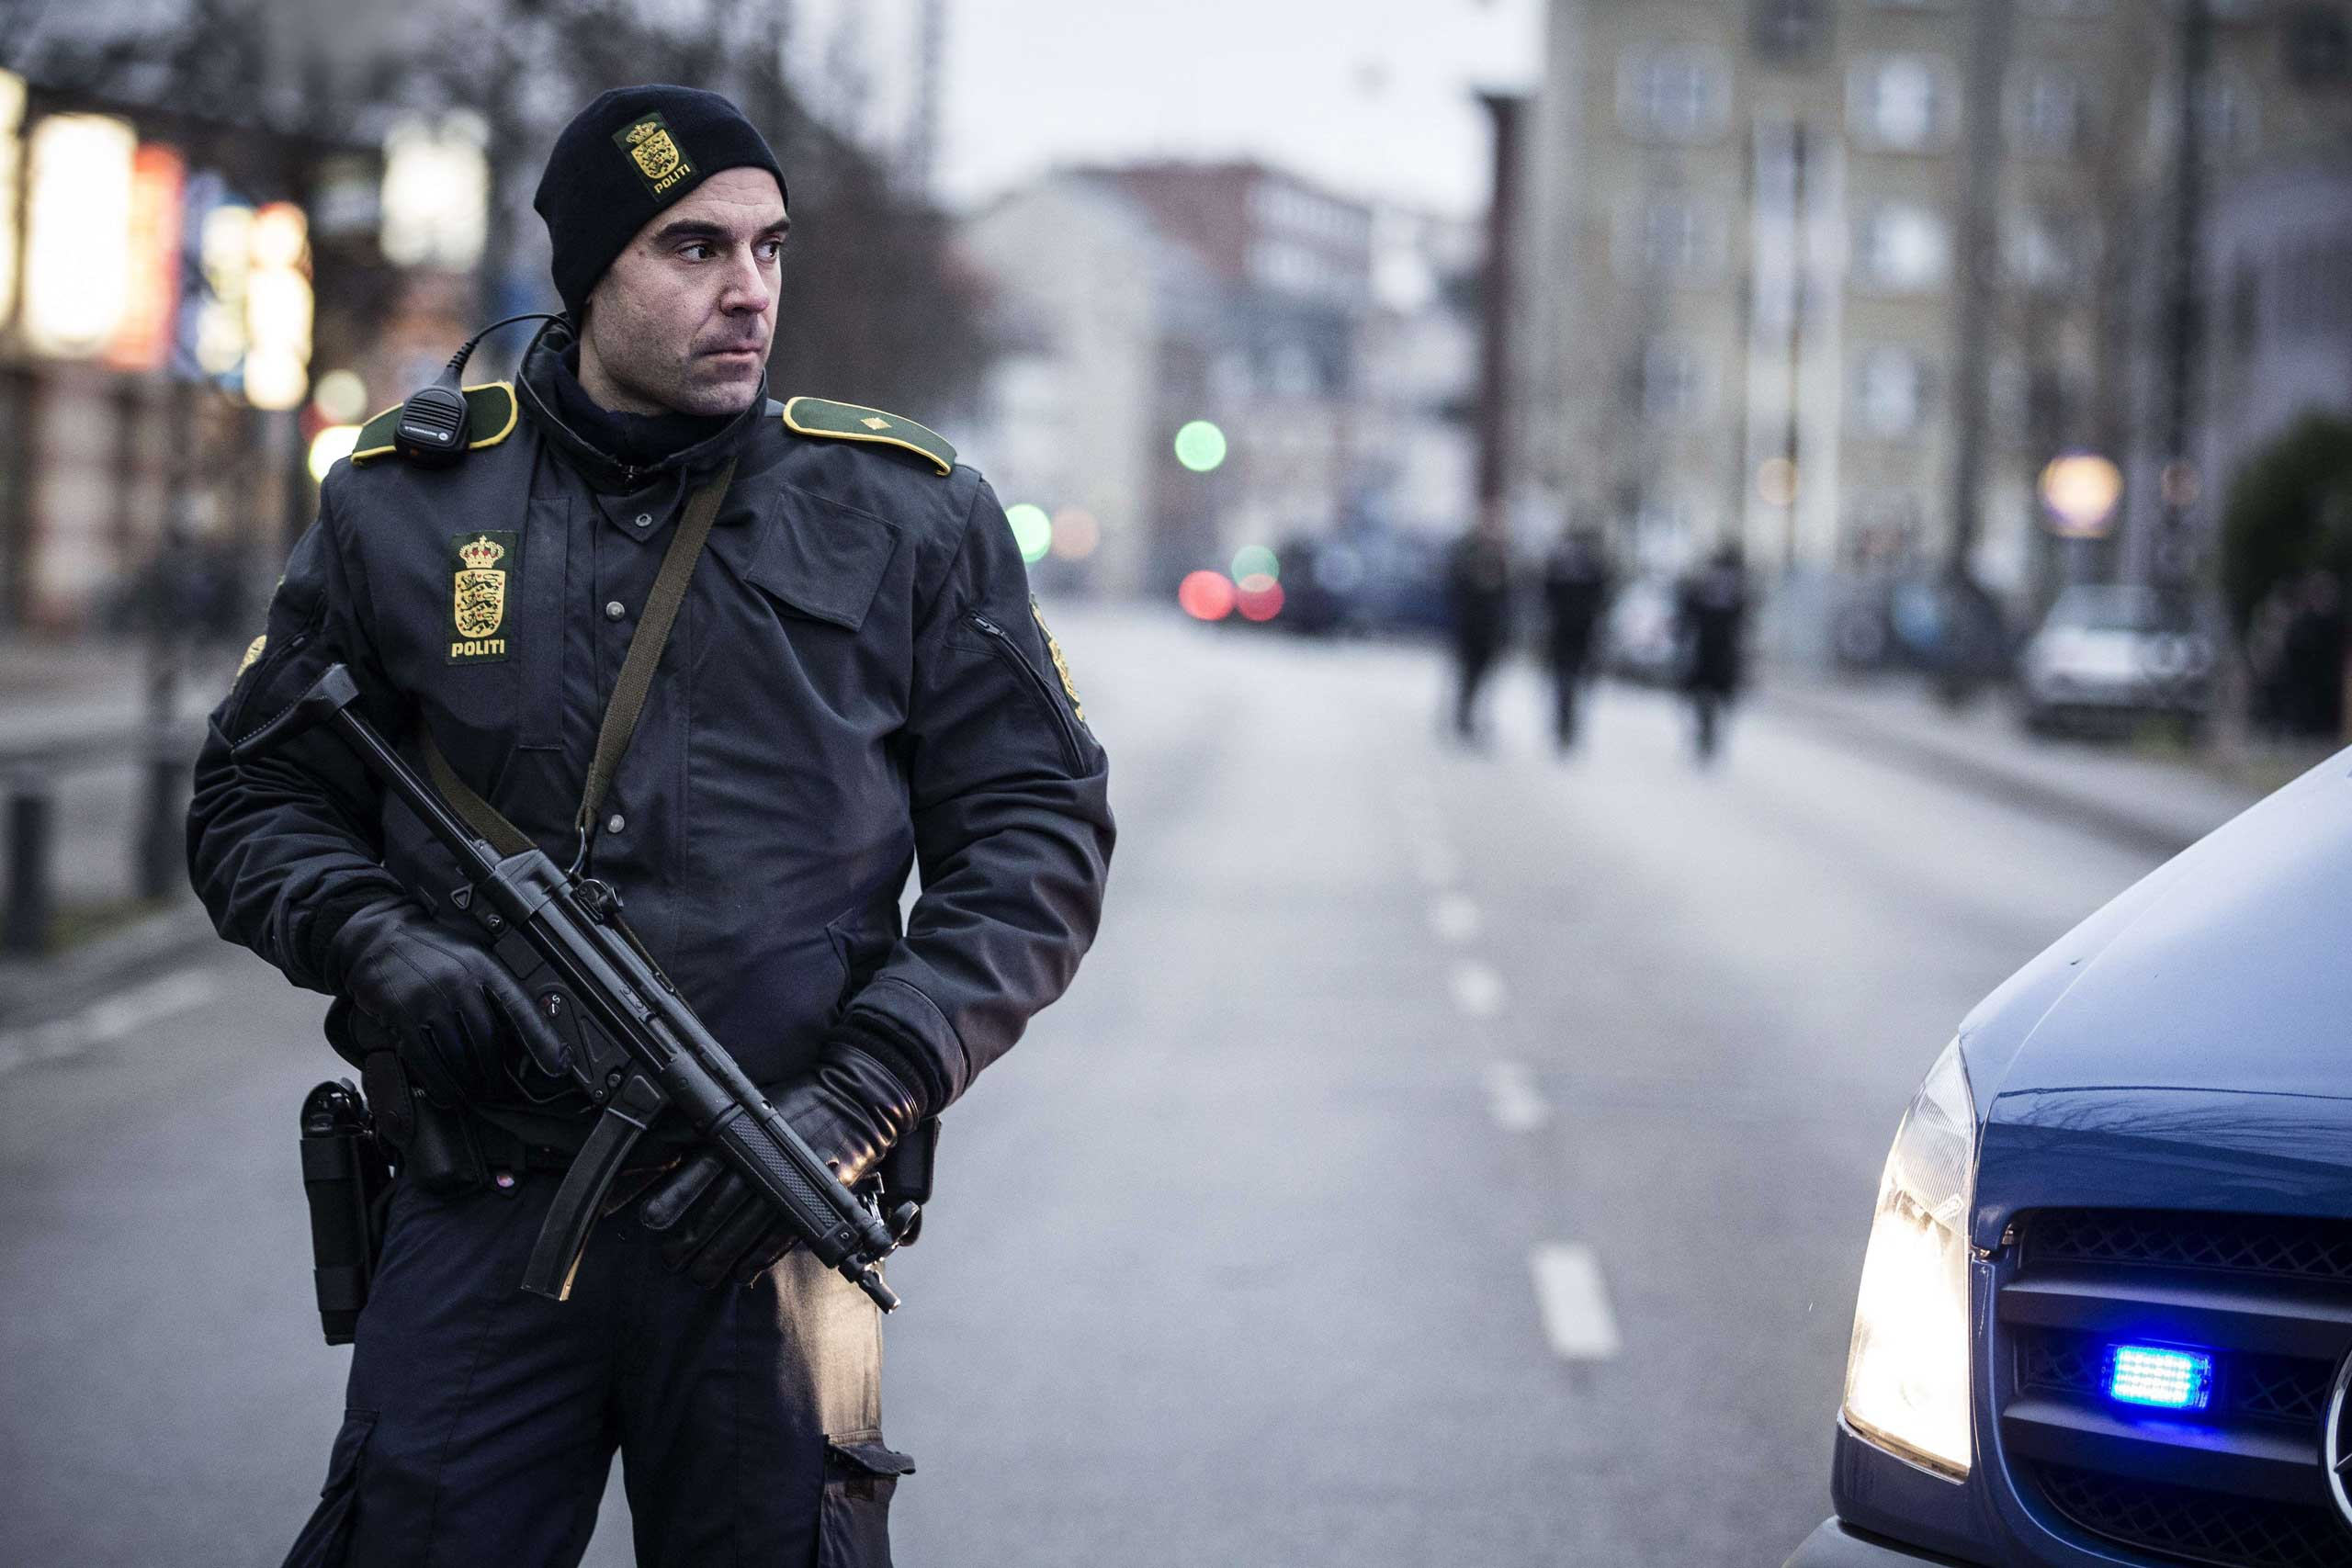 A police officer guards the street around the Noerrebro train station in Copenhagen on Feb. 15, 2015 where a man has been shot in a police action following two fatal attacks in the Danish capital.